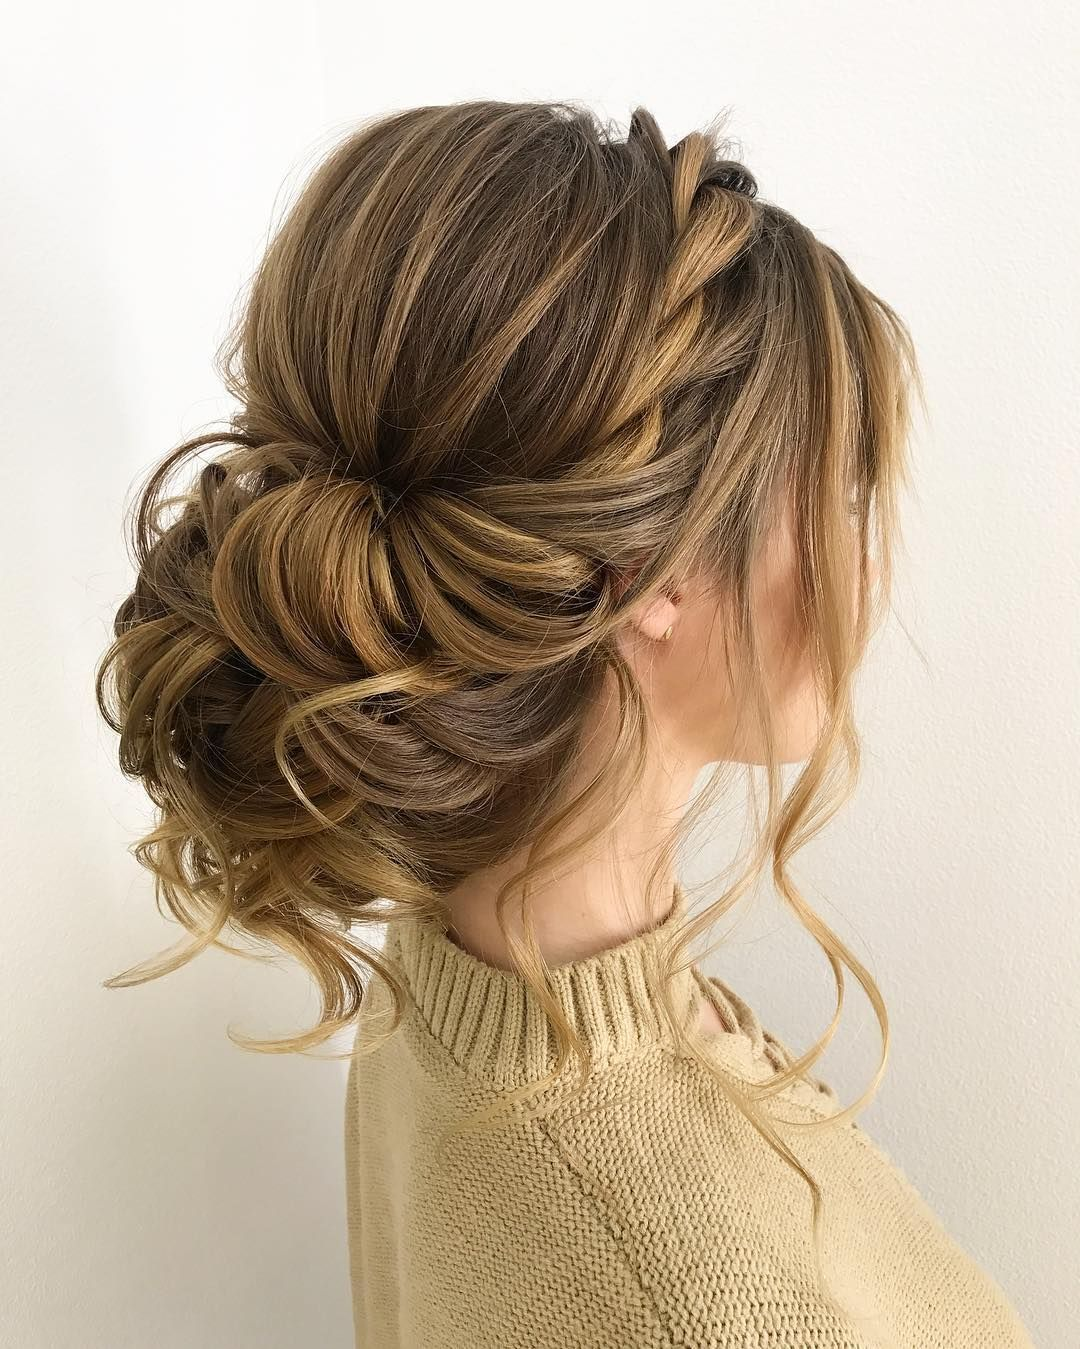 Wedding Hair Style Video: Gorgeous Wedding Updo Hairstyles That Will Wow Your Big